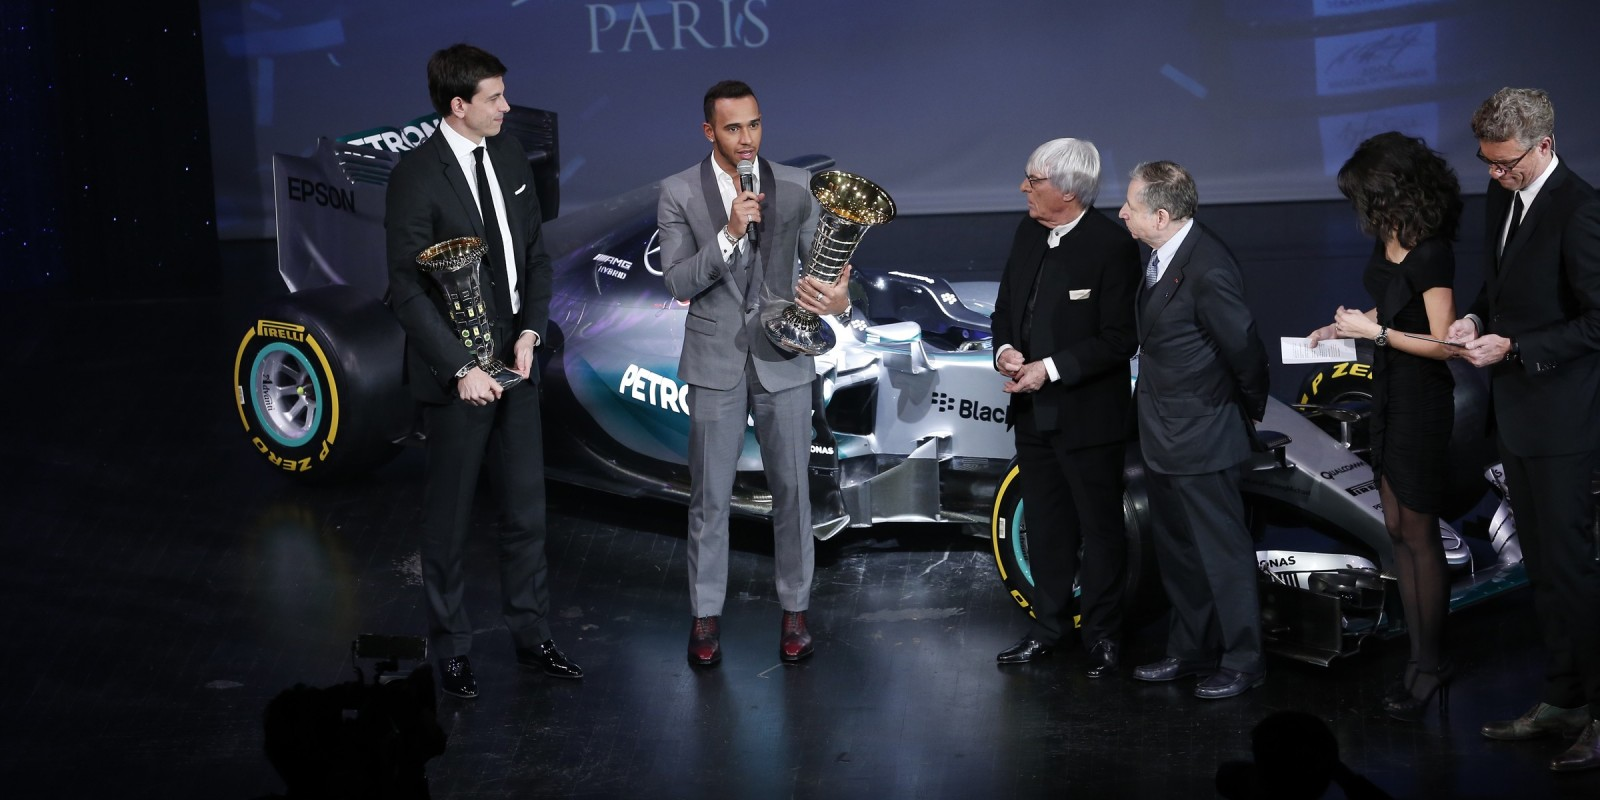 Lewis Hamilton collecting the 2015 FIA Formula One Drivers Championship Trophy at the 2015 FIA Awards Gala in Paris